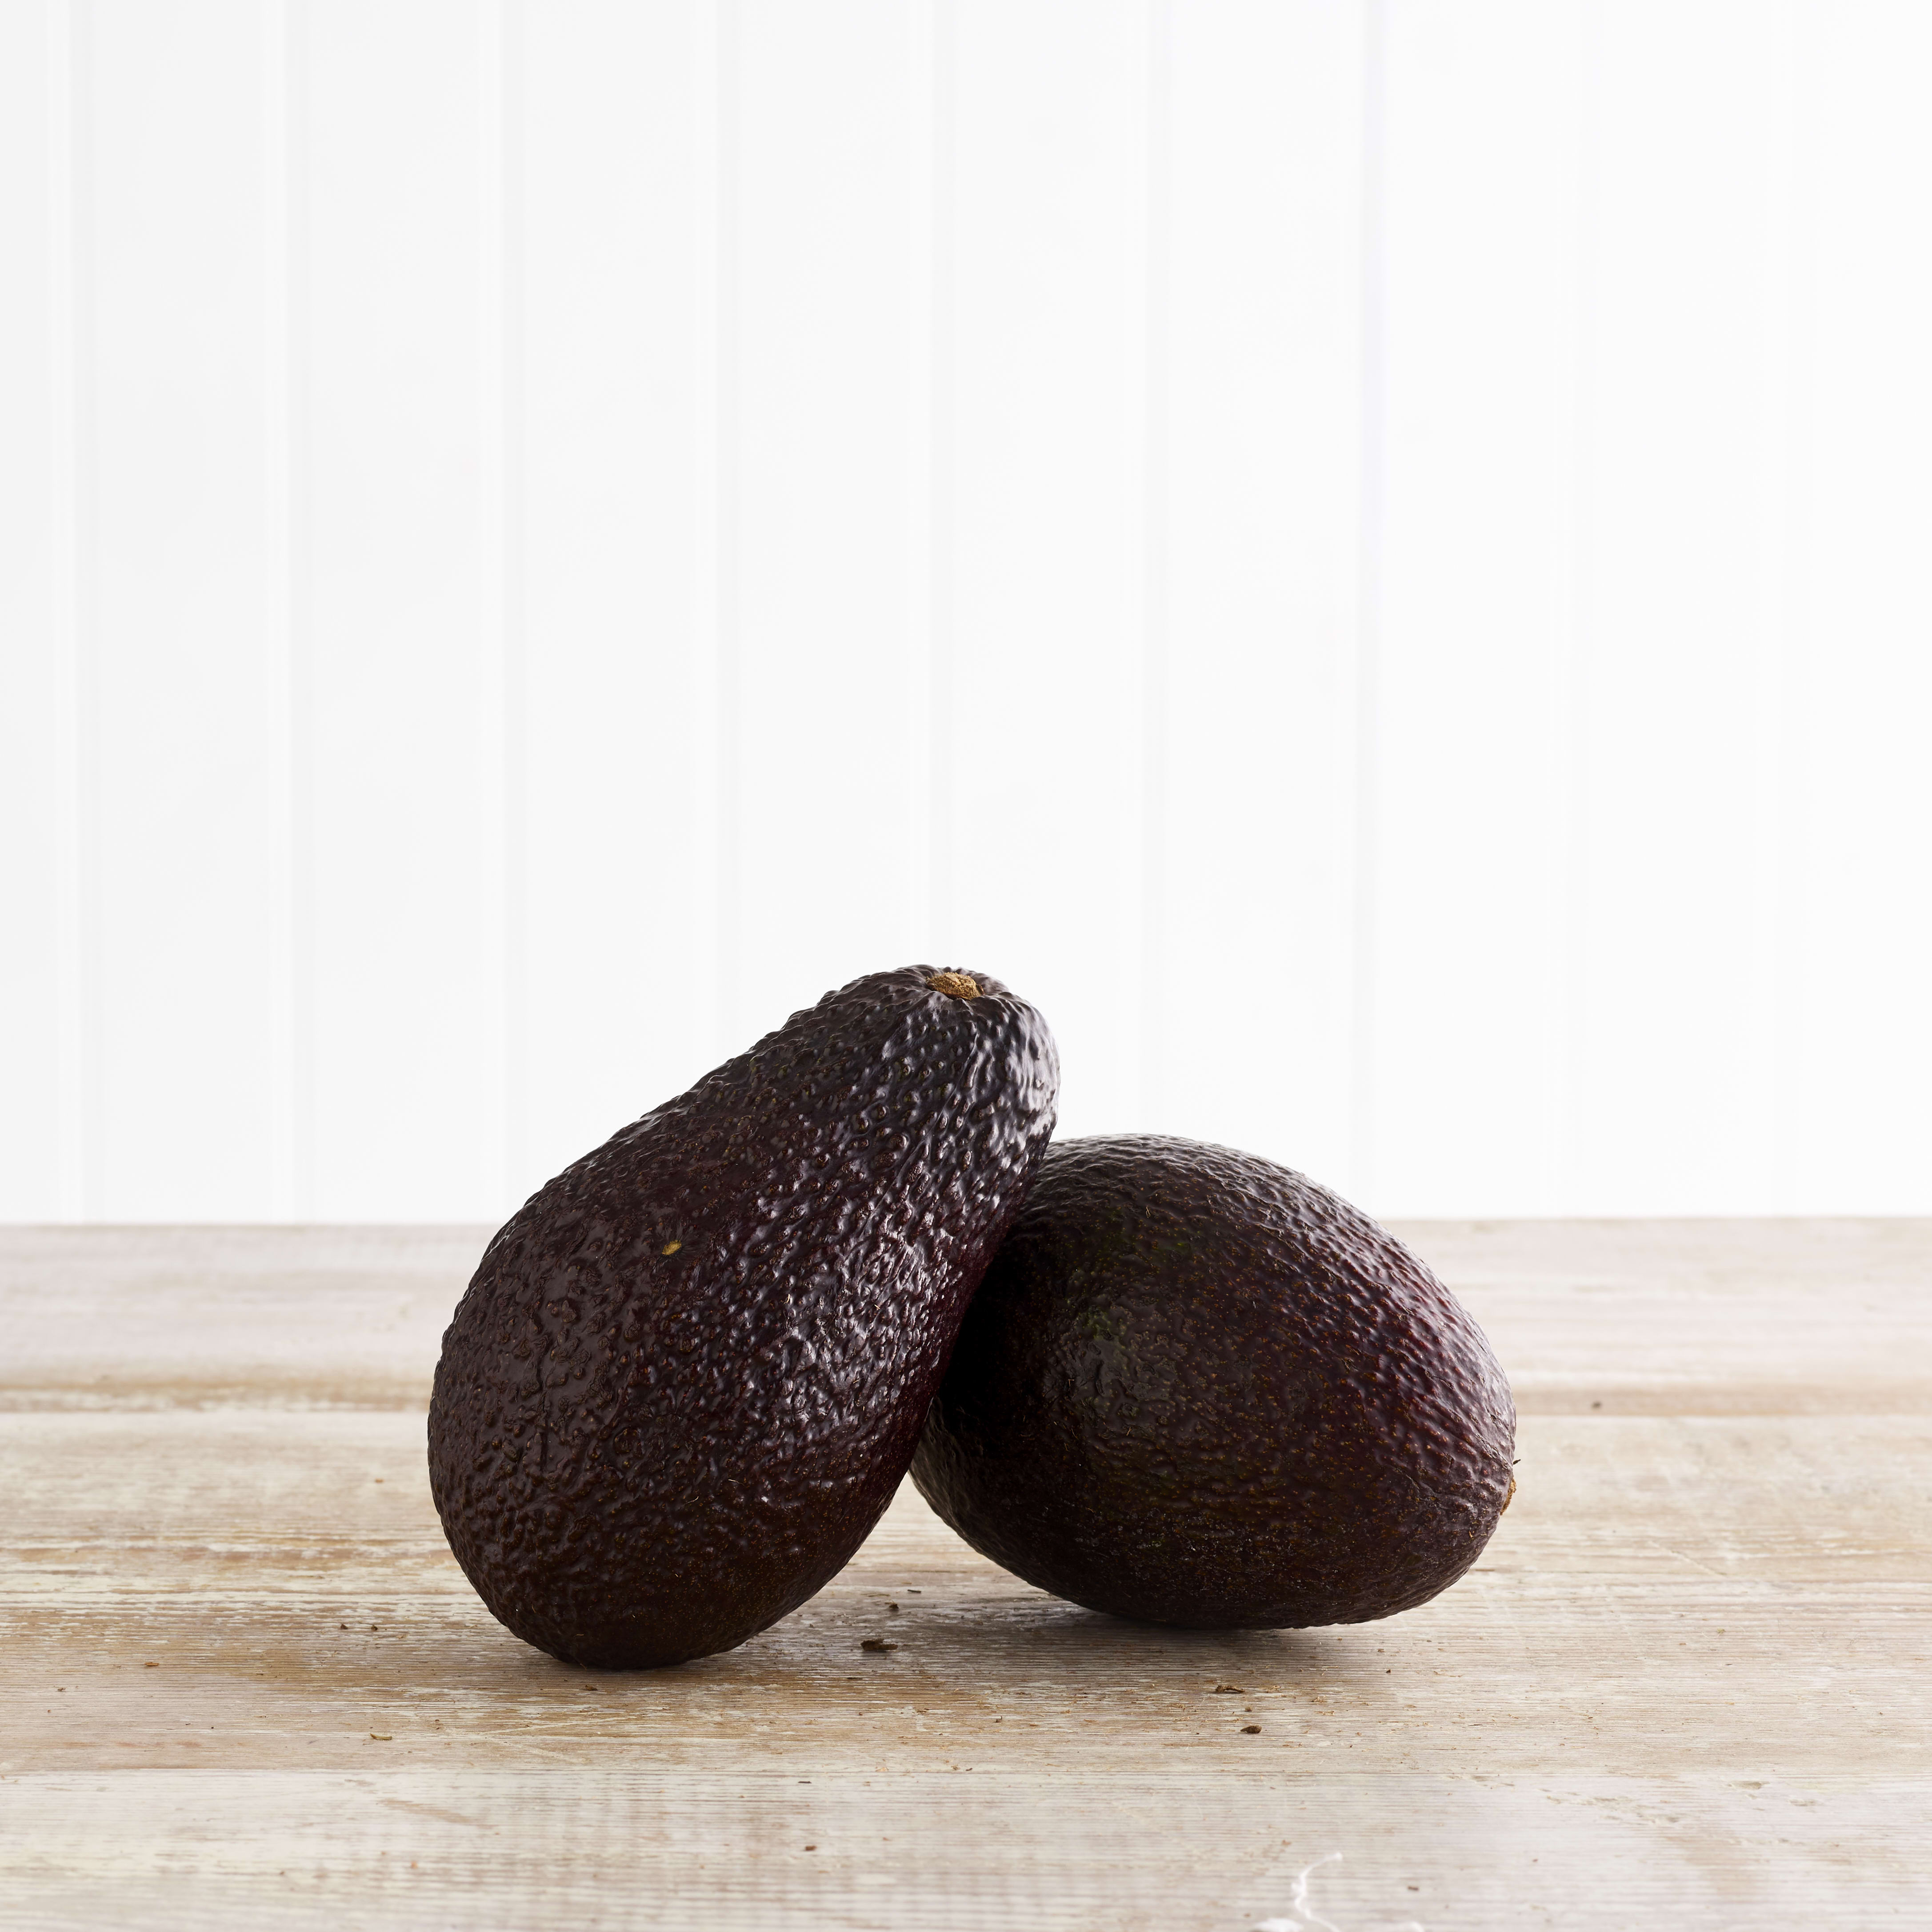 Organic Ripen at Home Avocados, 2 pack